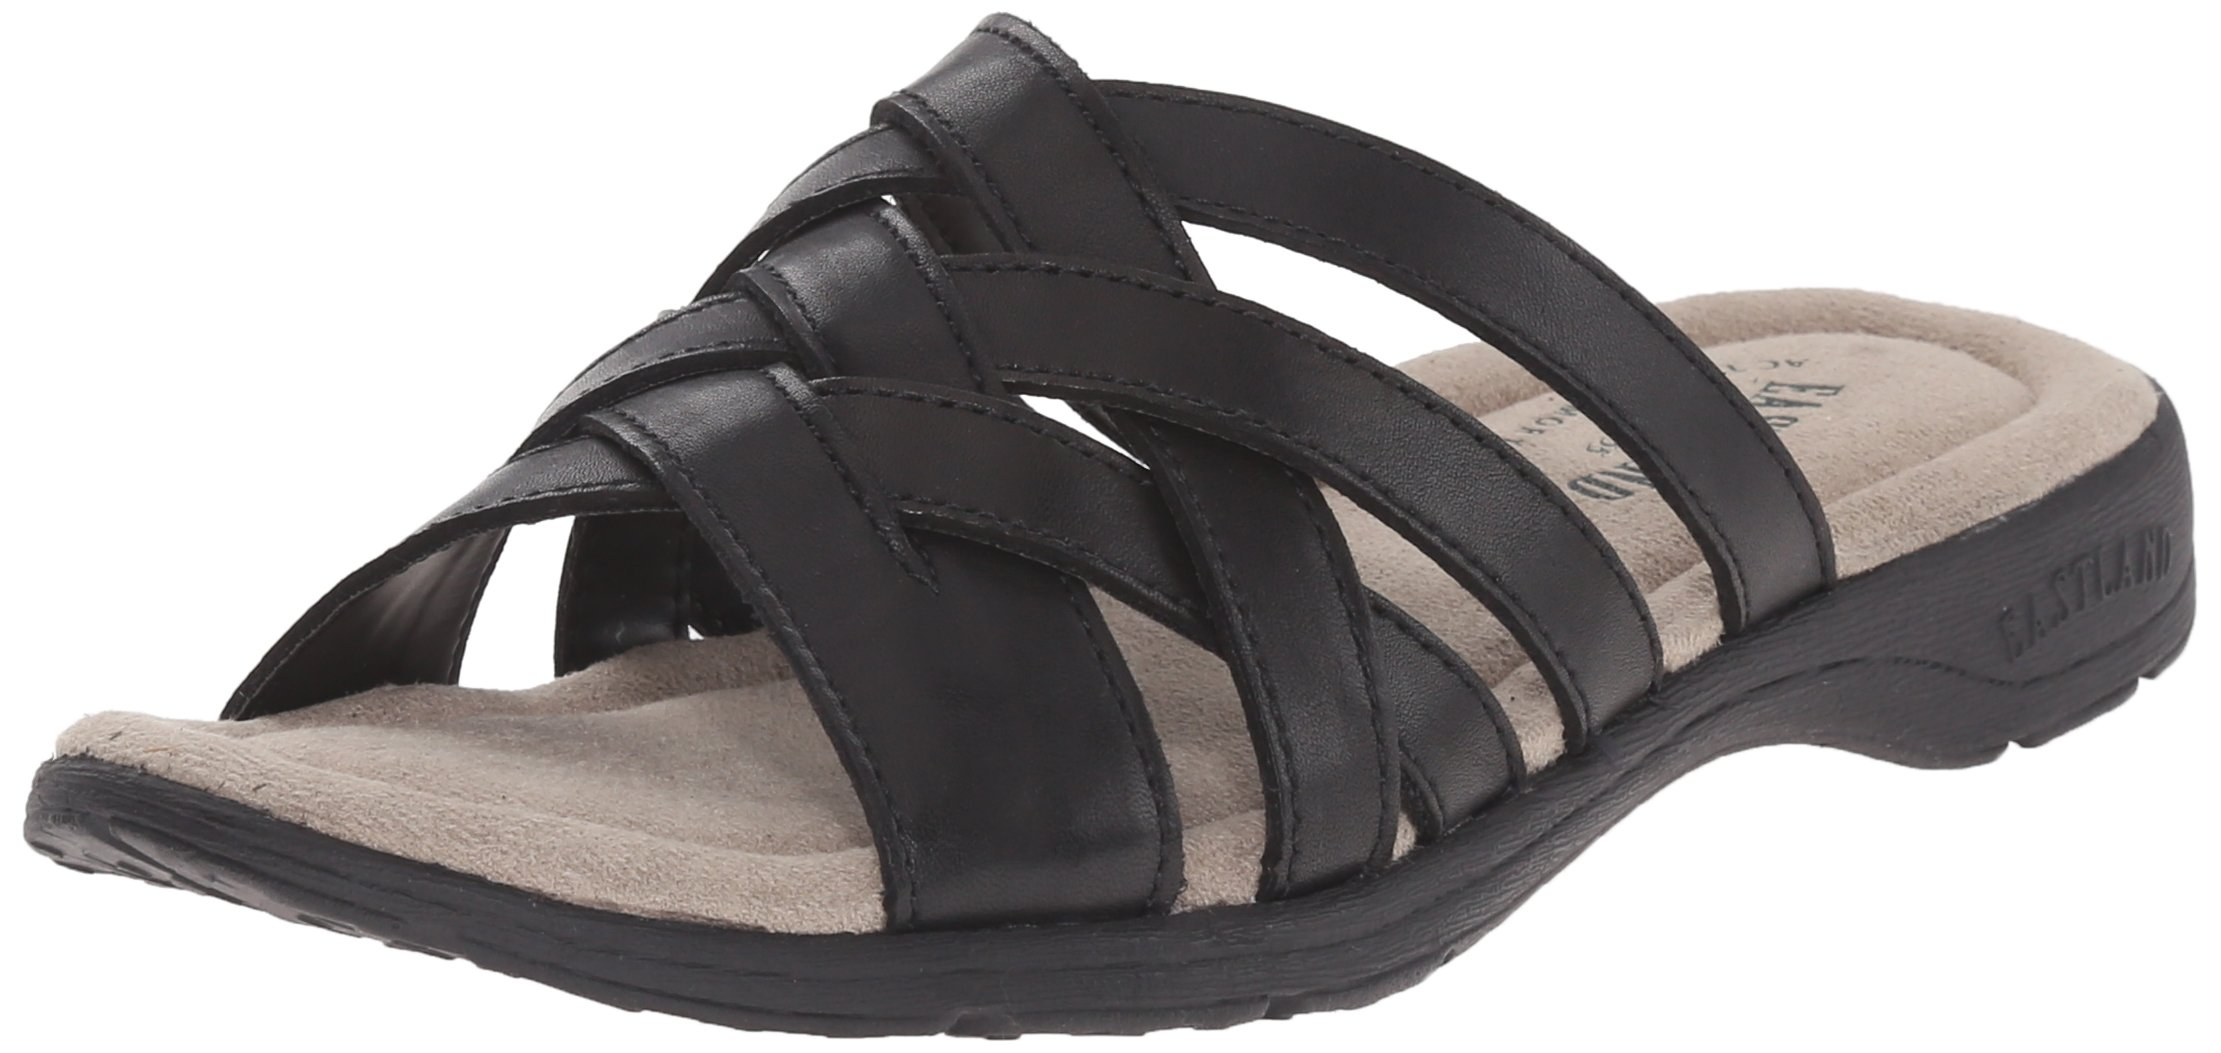 Eastland Women's Hazel Slide Sandal